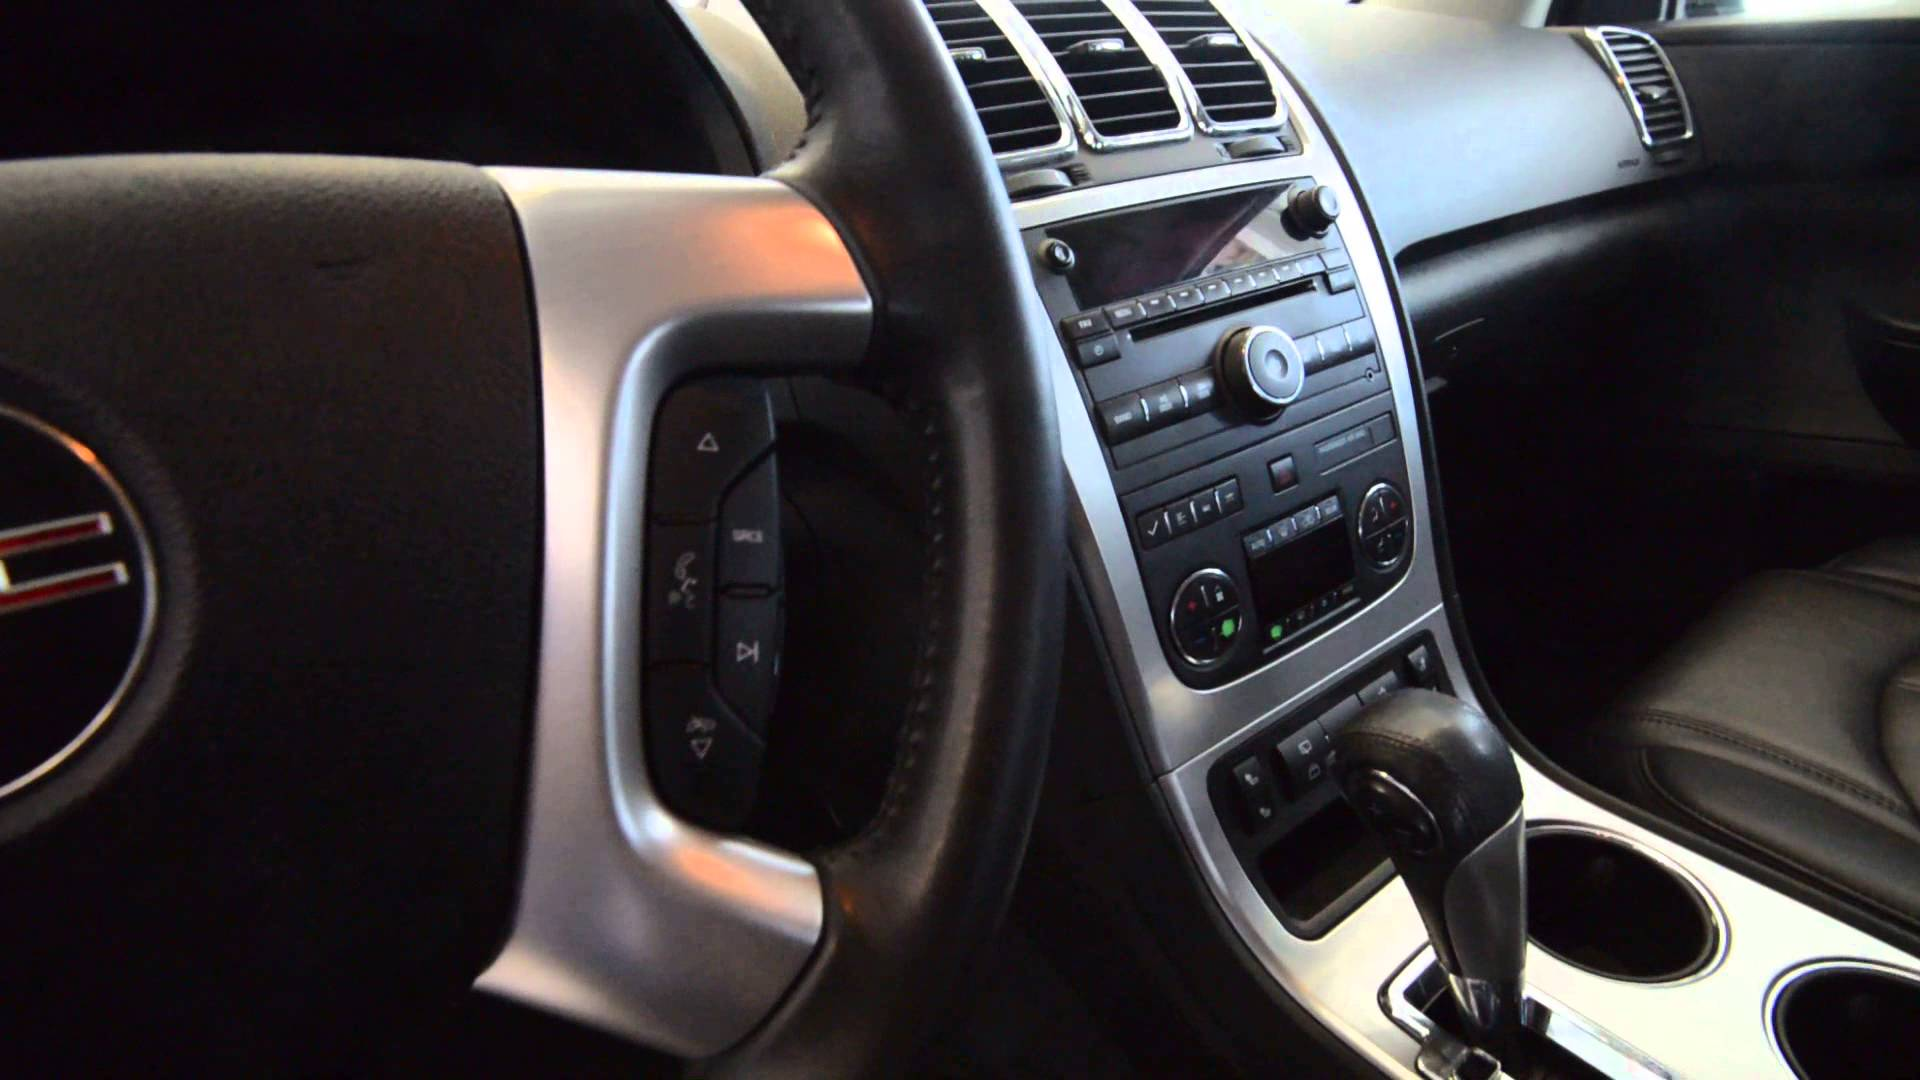 2010 gmc acadia slt leather stk p2761 for sale at trend motors used car center in rockaway nj youtube